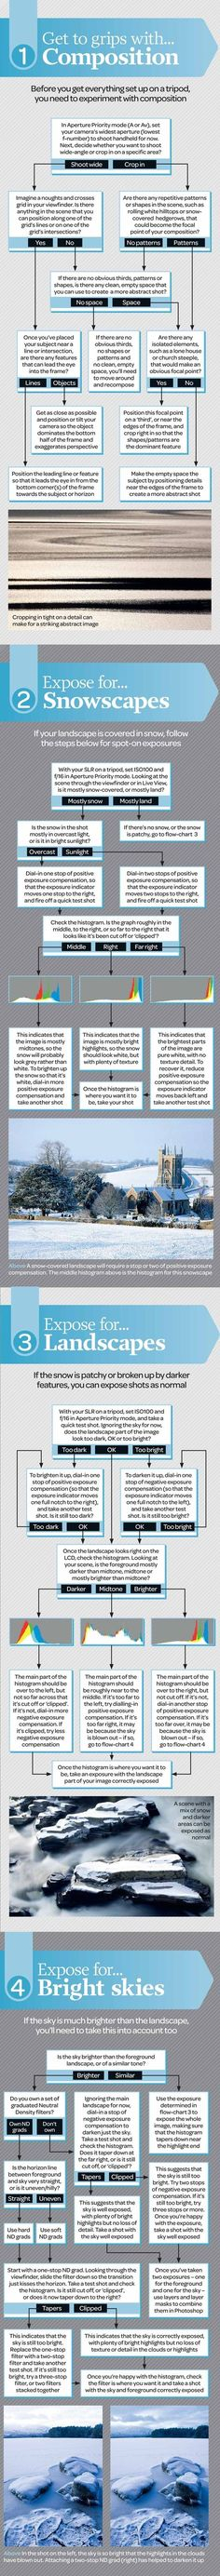 Landscape Photography Tips: Winter landscape photography cheat sheet: how to c.